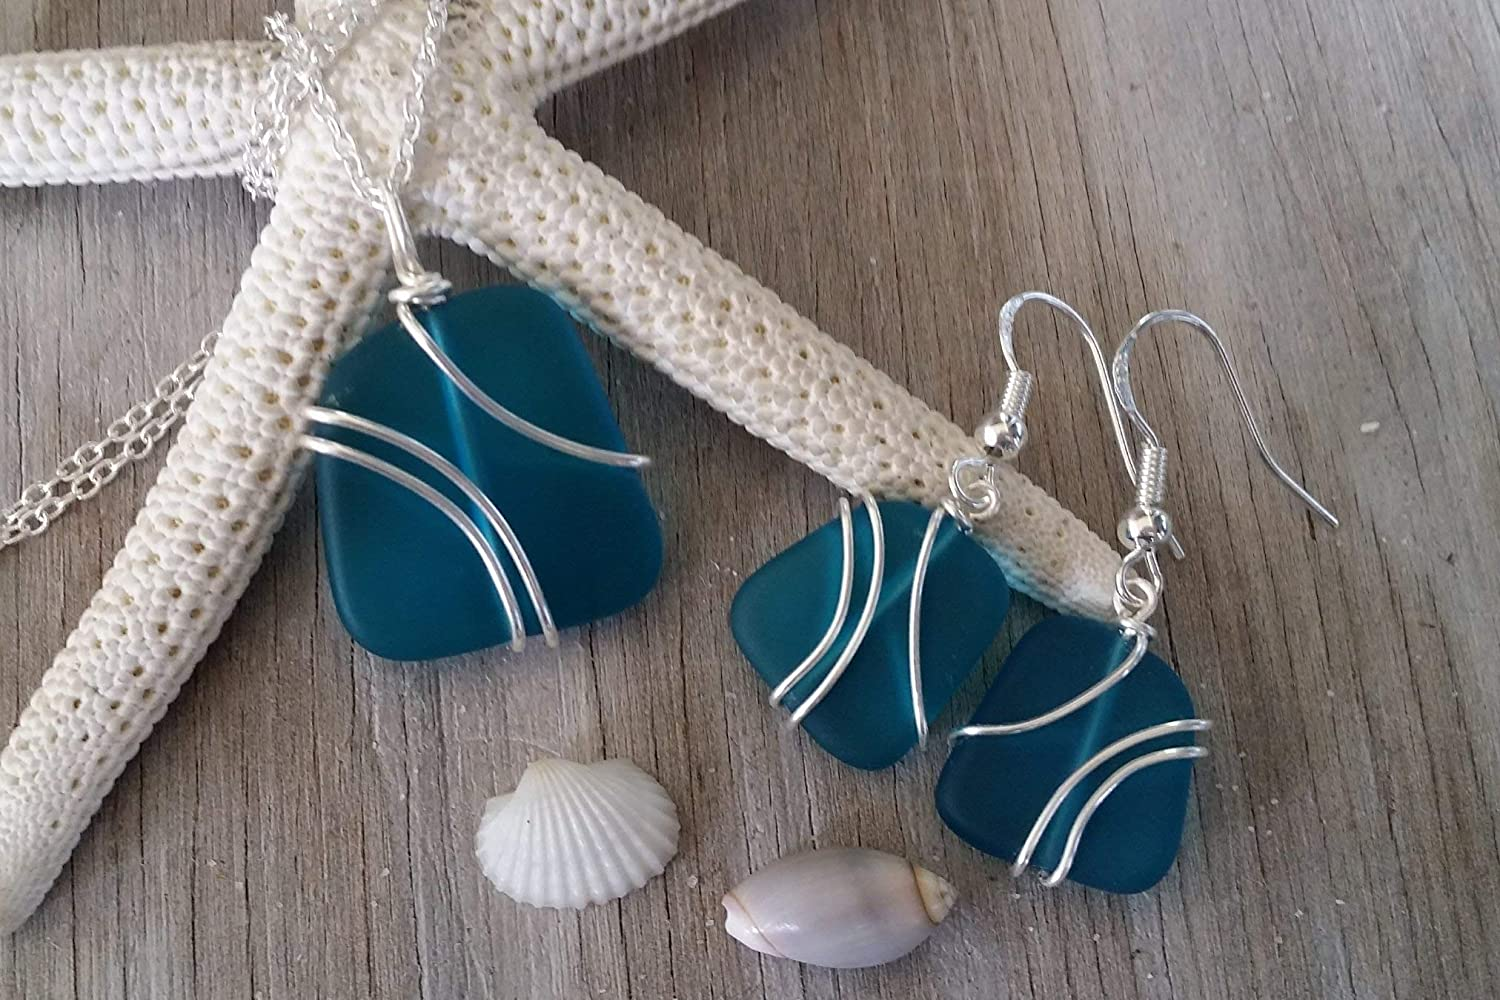 Hawaii Gift Wrapped, Customizable Gift Message Handmade jewelry from Hawaii wire wrapped teal blue sea glass Necklace+Earrings Set,